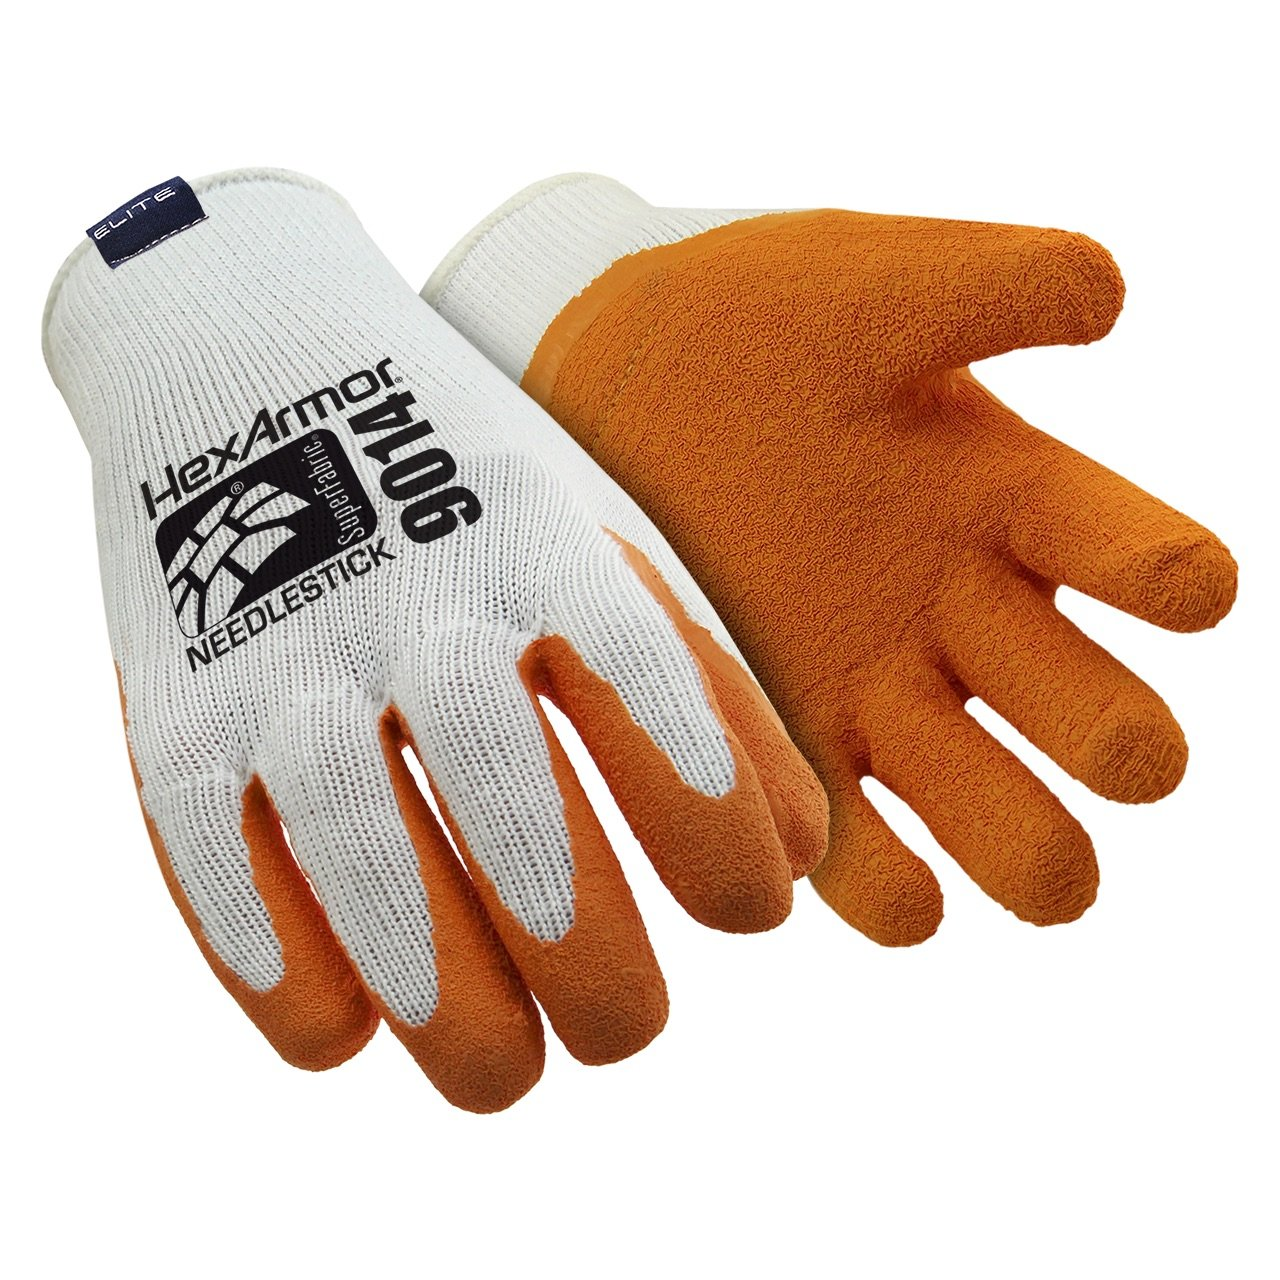 DayMark SharpsMaster Needle Protection Glove, Large, Pair by DayMark Safety Systems (Image #1)